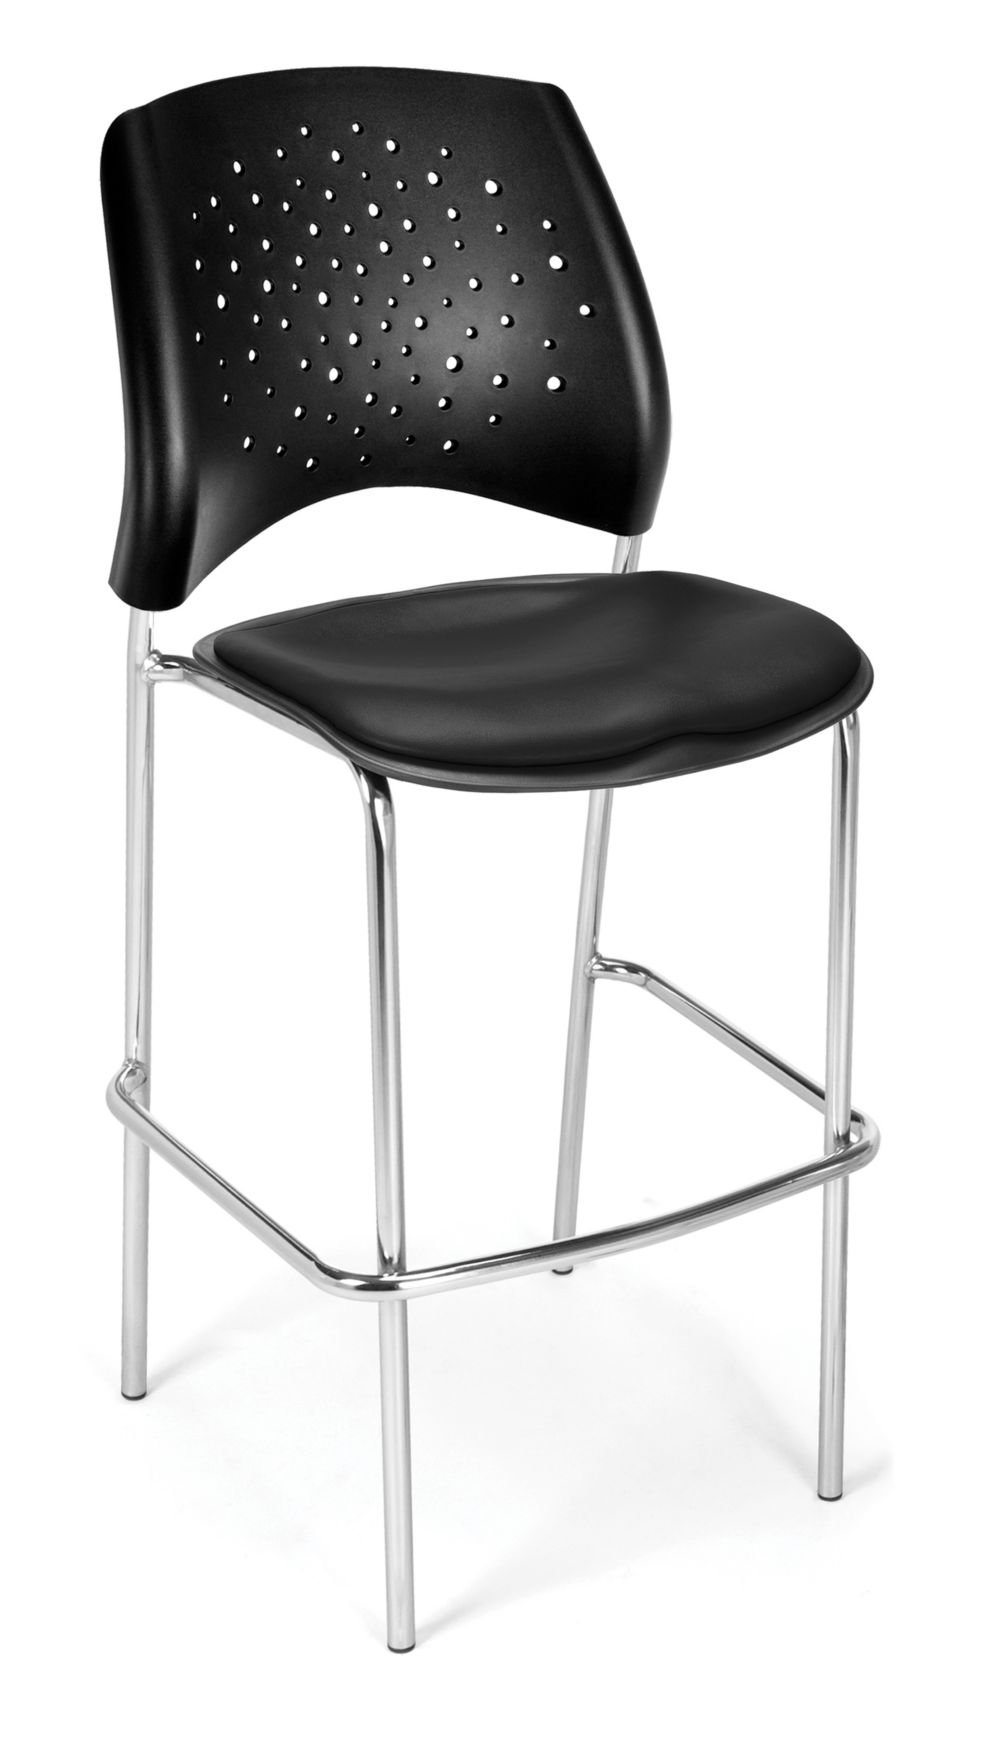 Set of 2 Cafe Height Vinyl Chair Black Vinyl/Silver Dimensions: 21.5''W x 23''D x 45.75''H Weight: 103 lbs